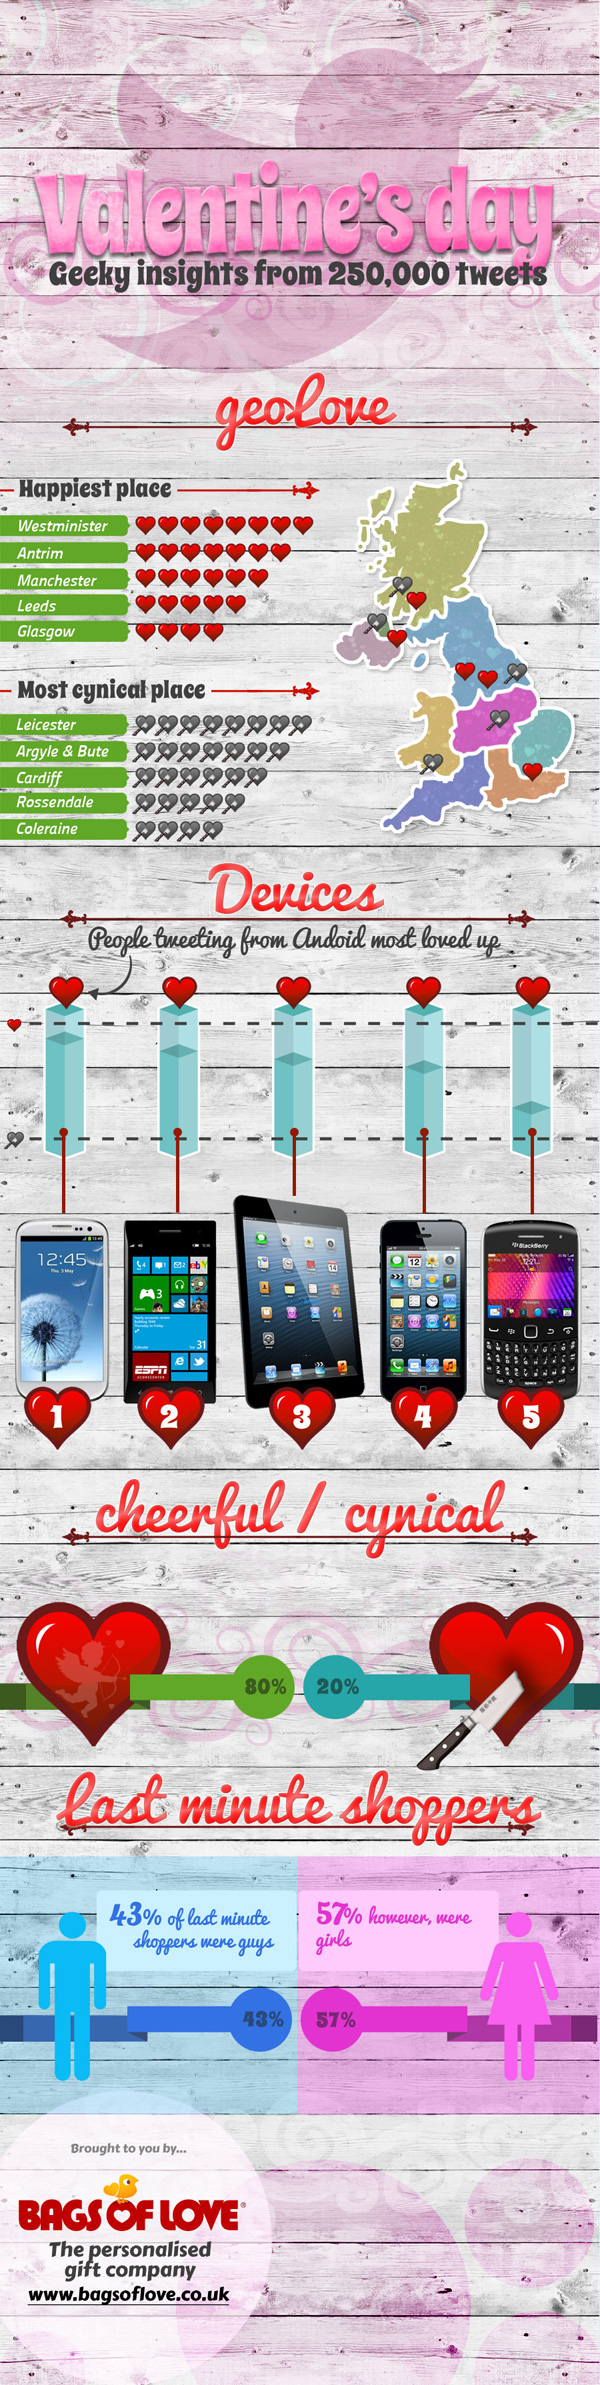 Geeky Insights from 2013 Valentines Day Tweets Infographic by Bags of Love